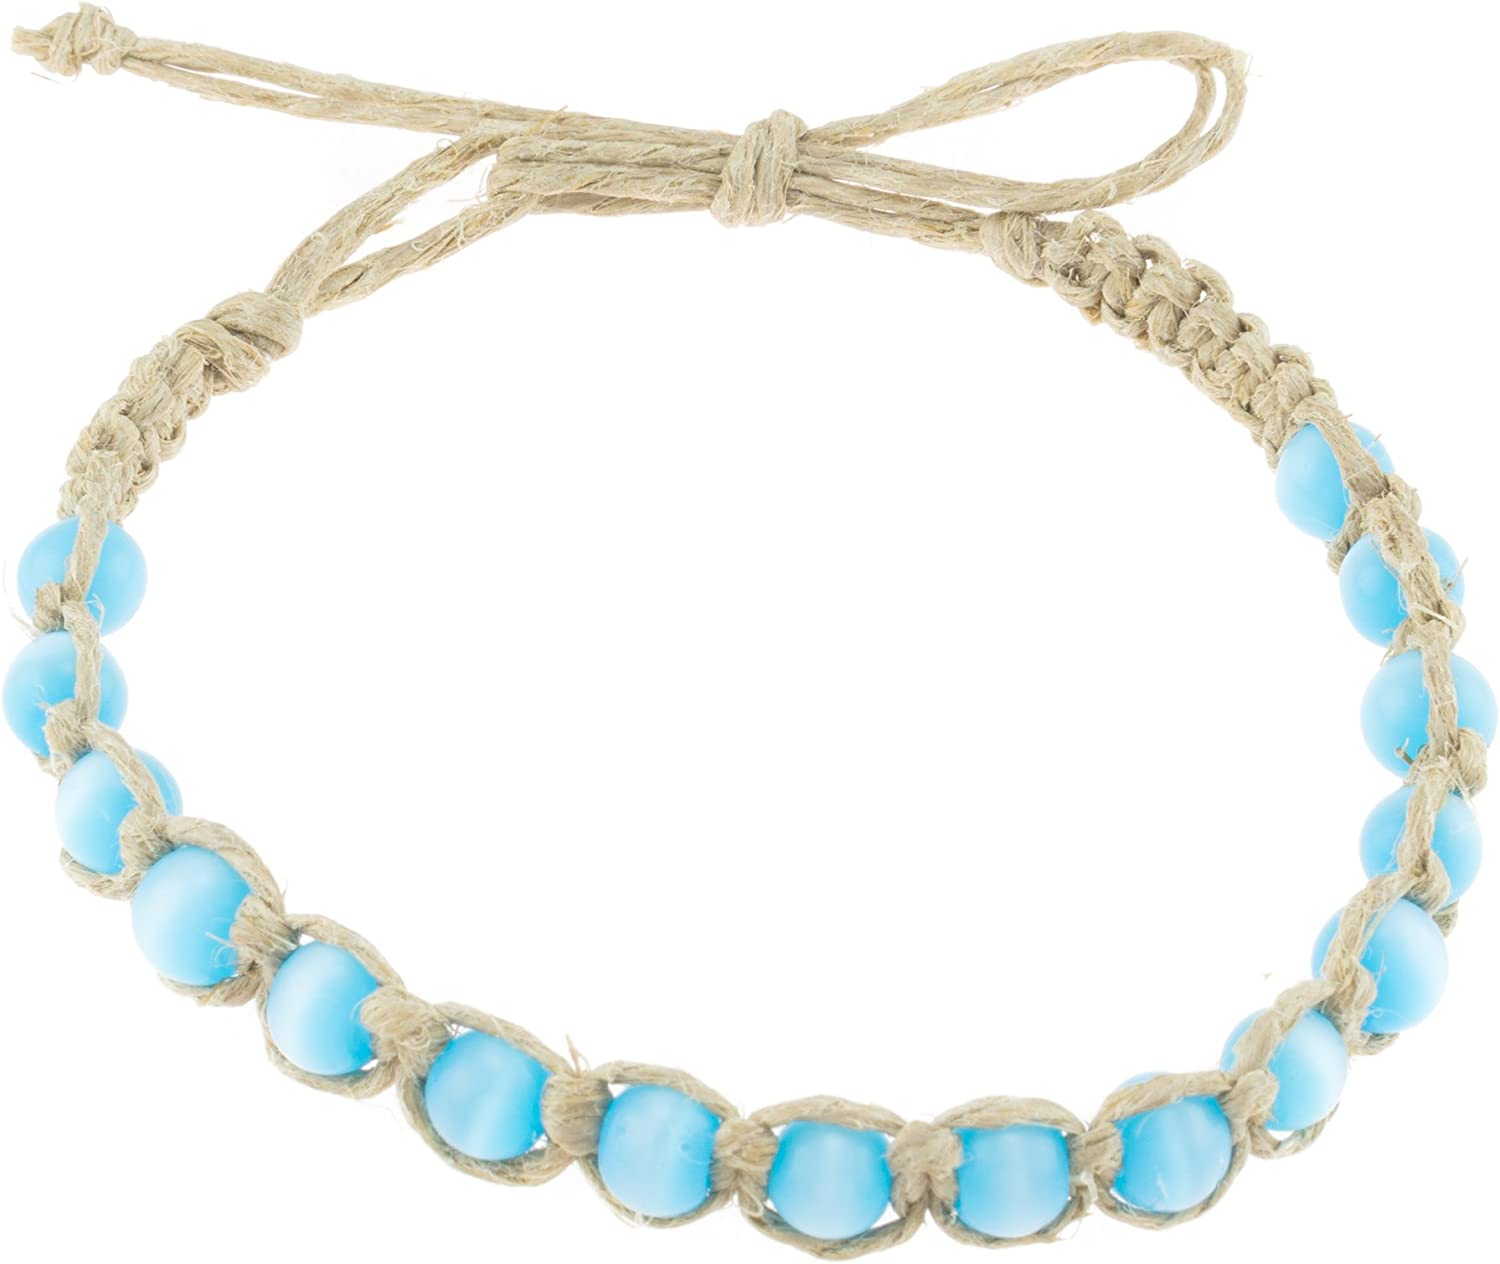 BlueRica Braided Hemp Cord Anklet Bracelet with Turquoise Blue Cat's Eye Beads